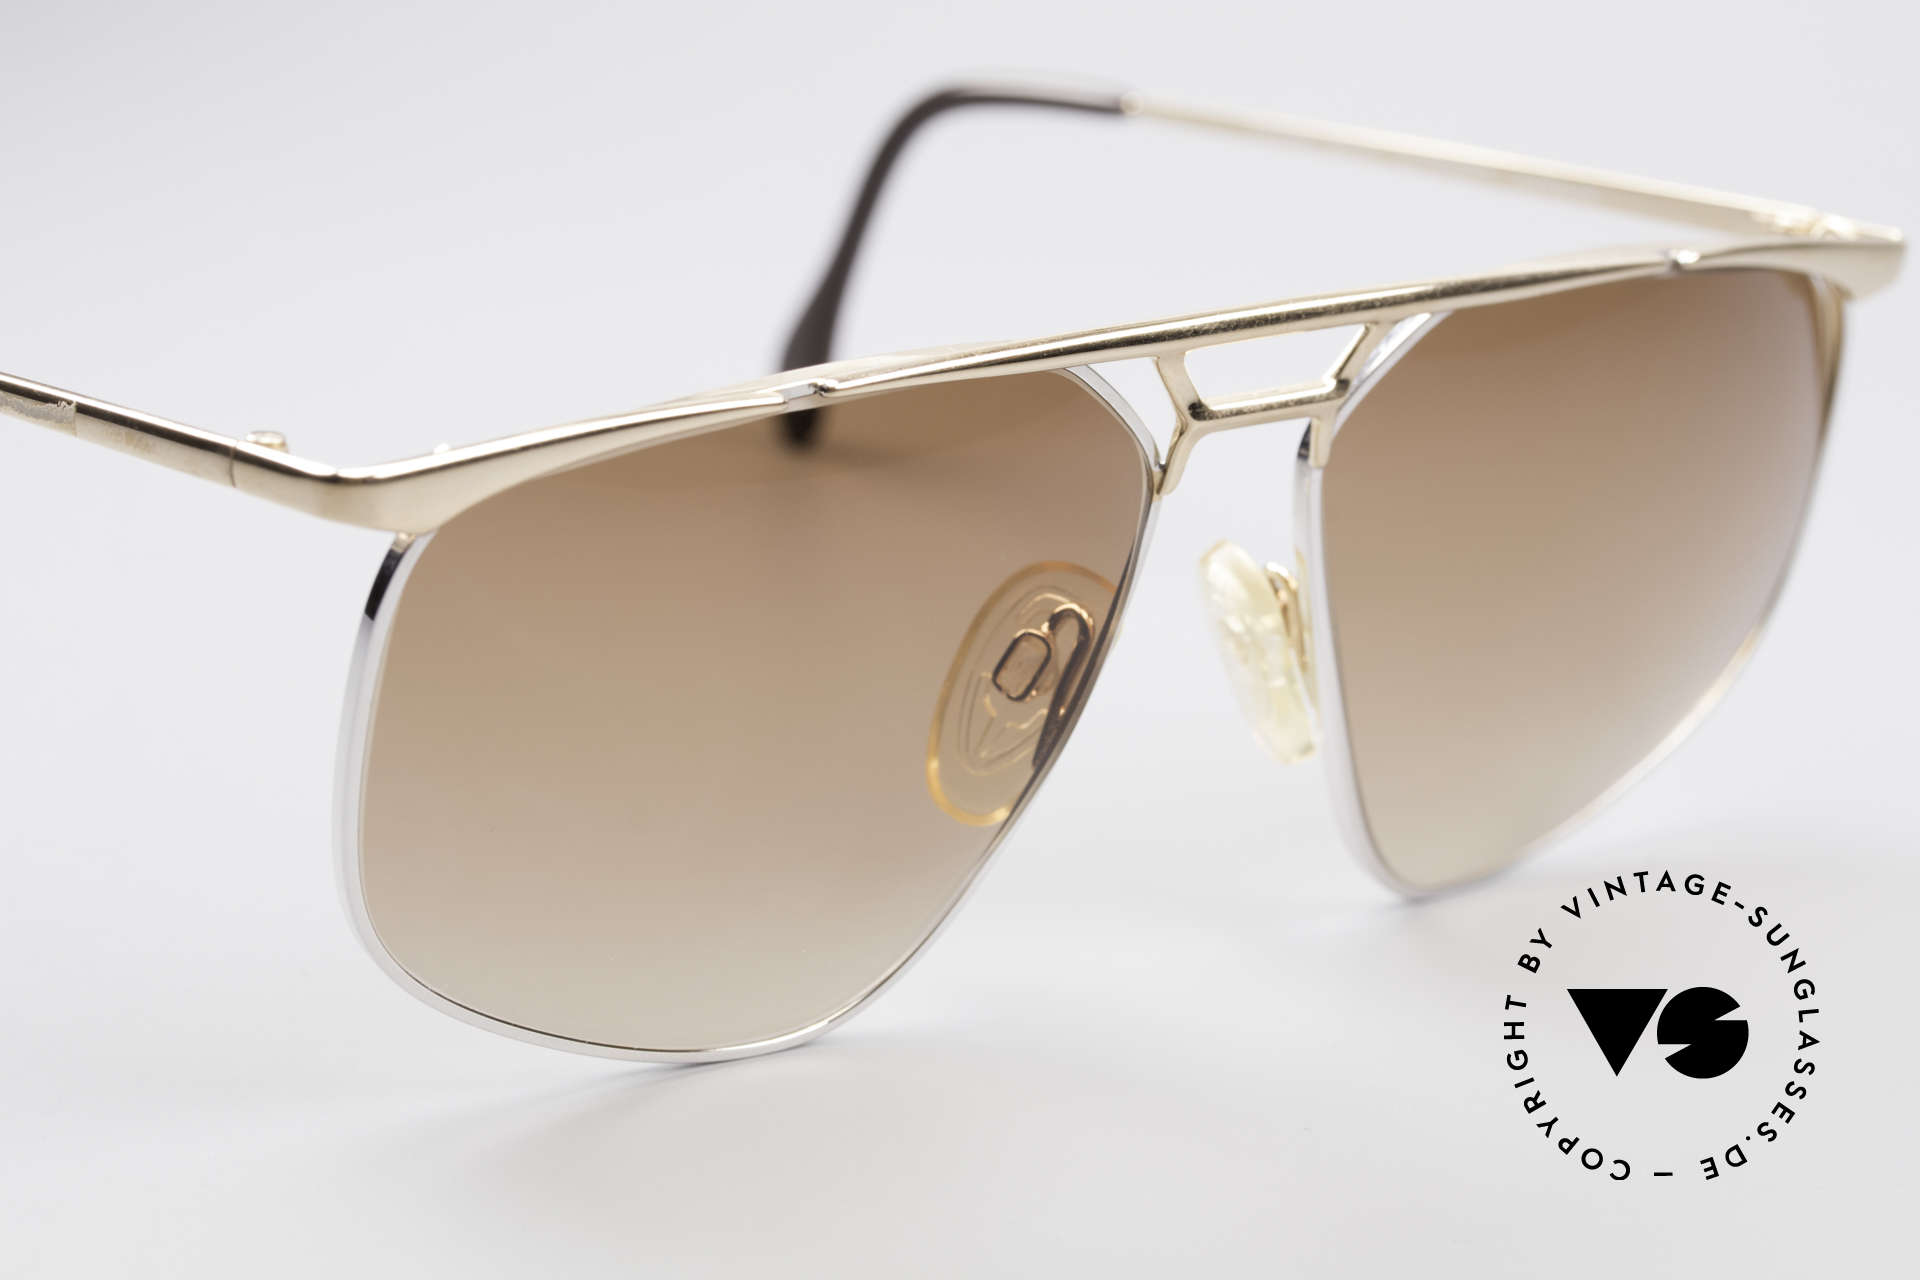 Zollitsch Cadre 9 18kt Gold Plated Sunglasses, unworn (like all our rare vintage Zollitsch sunglasses), Made for Men